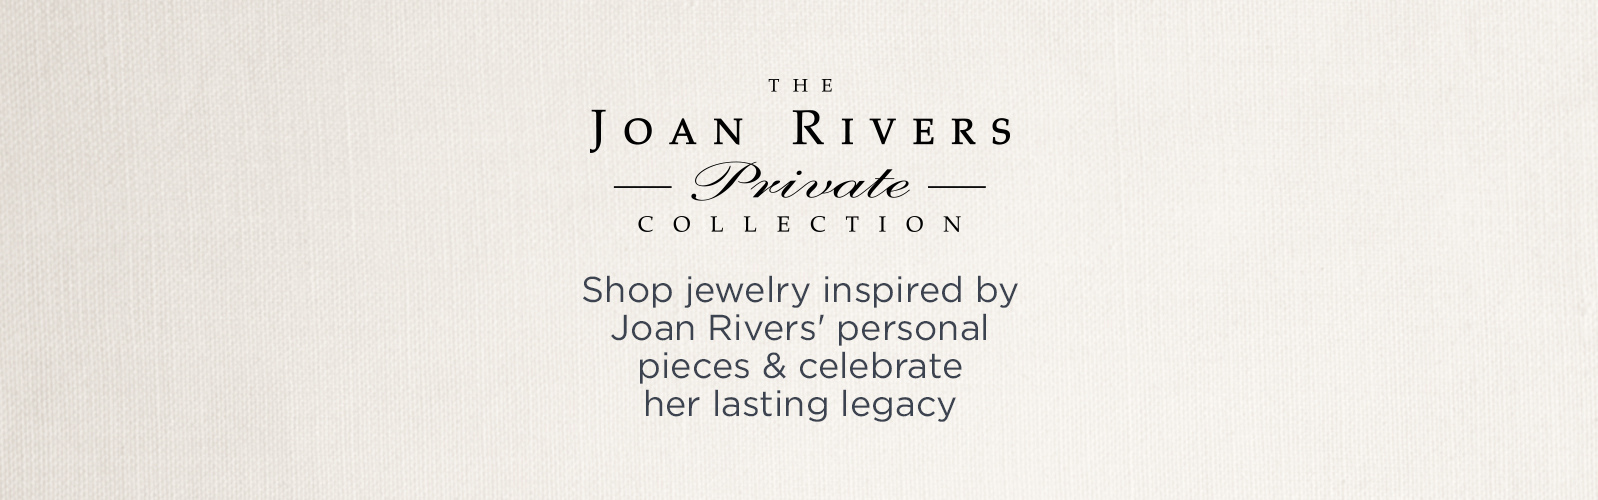 The Joan Rivers Private Collection Shop jewelry inspired by Joan Rivers' personal pieces & celebrate her lasting legacy